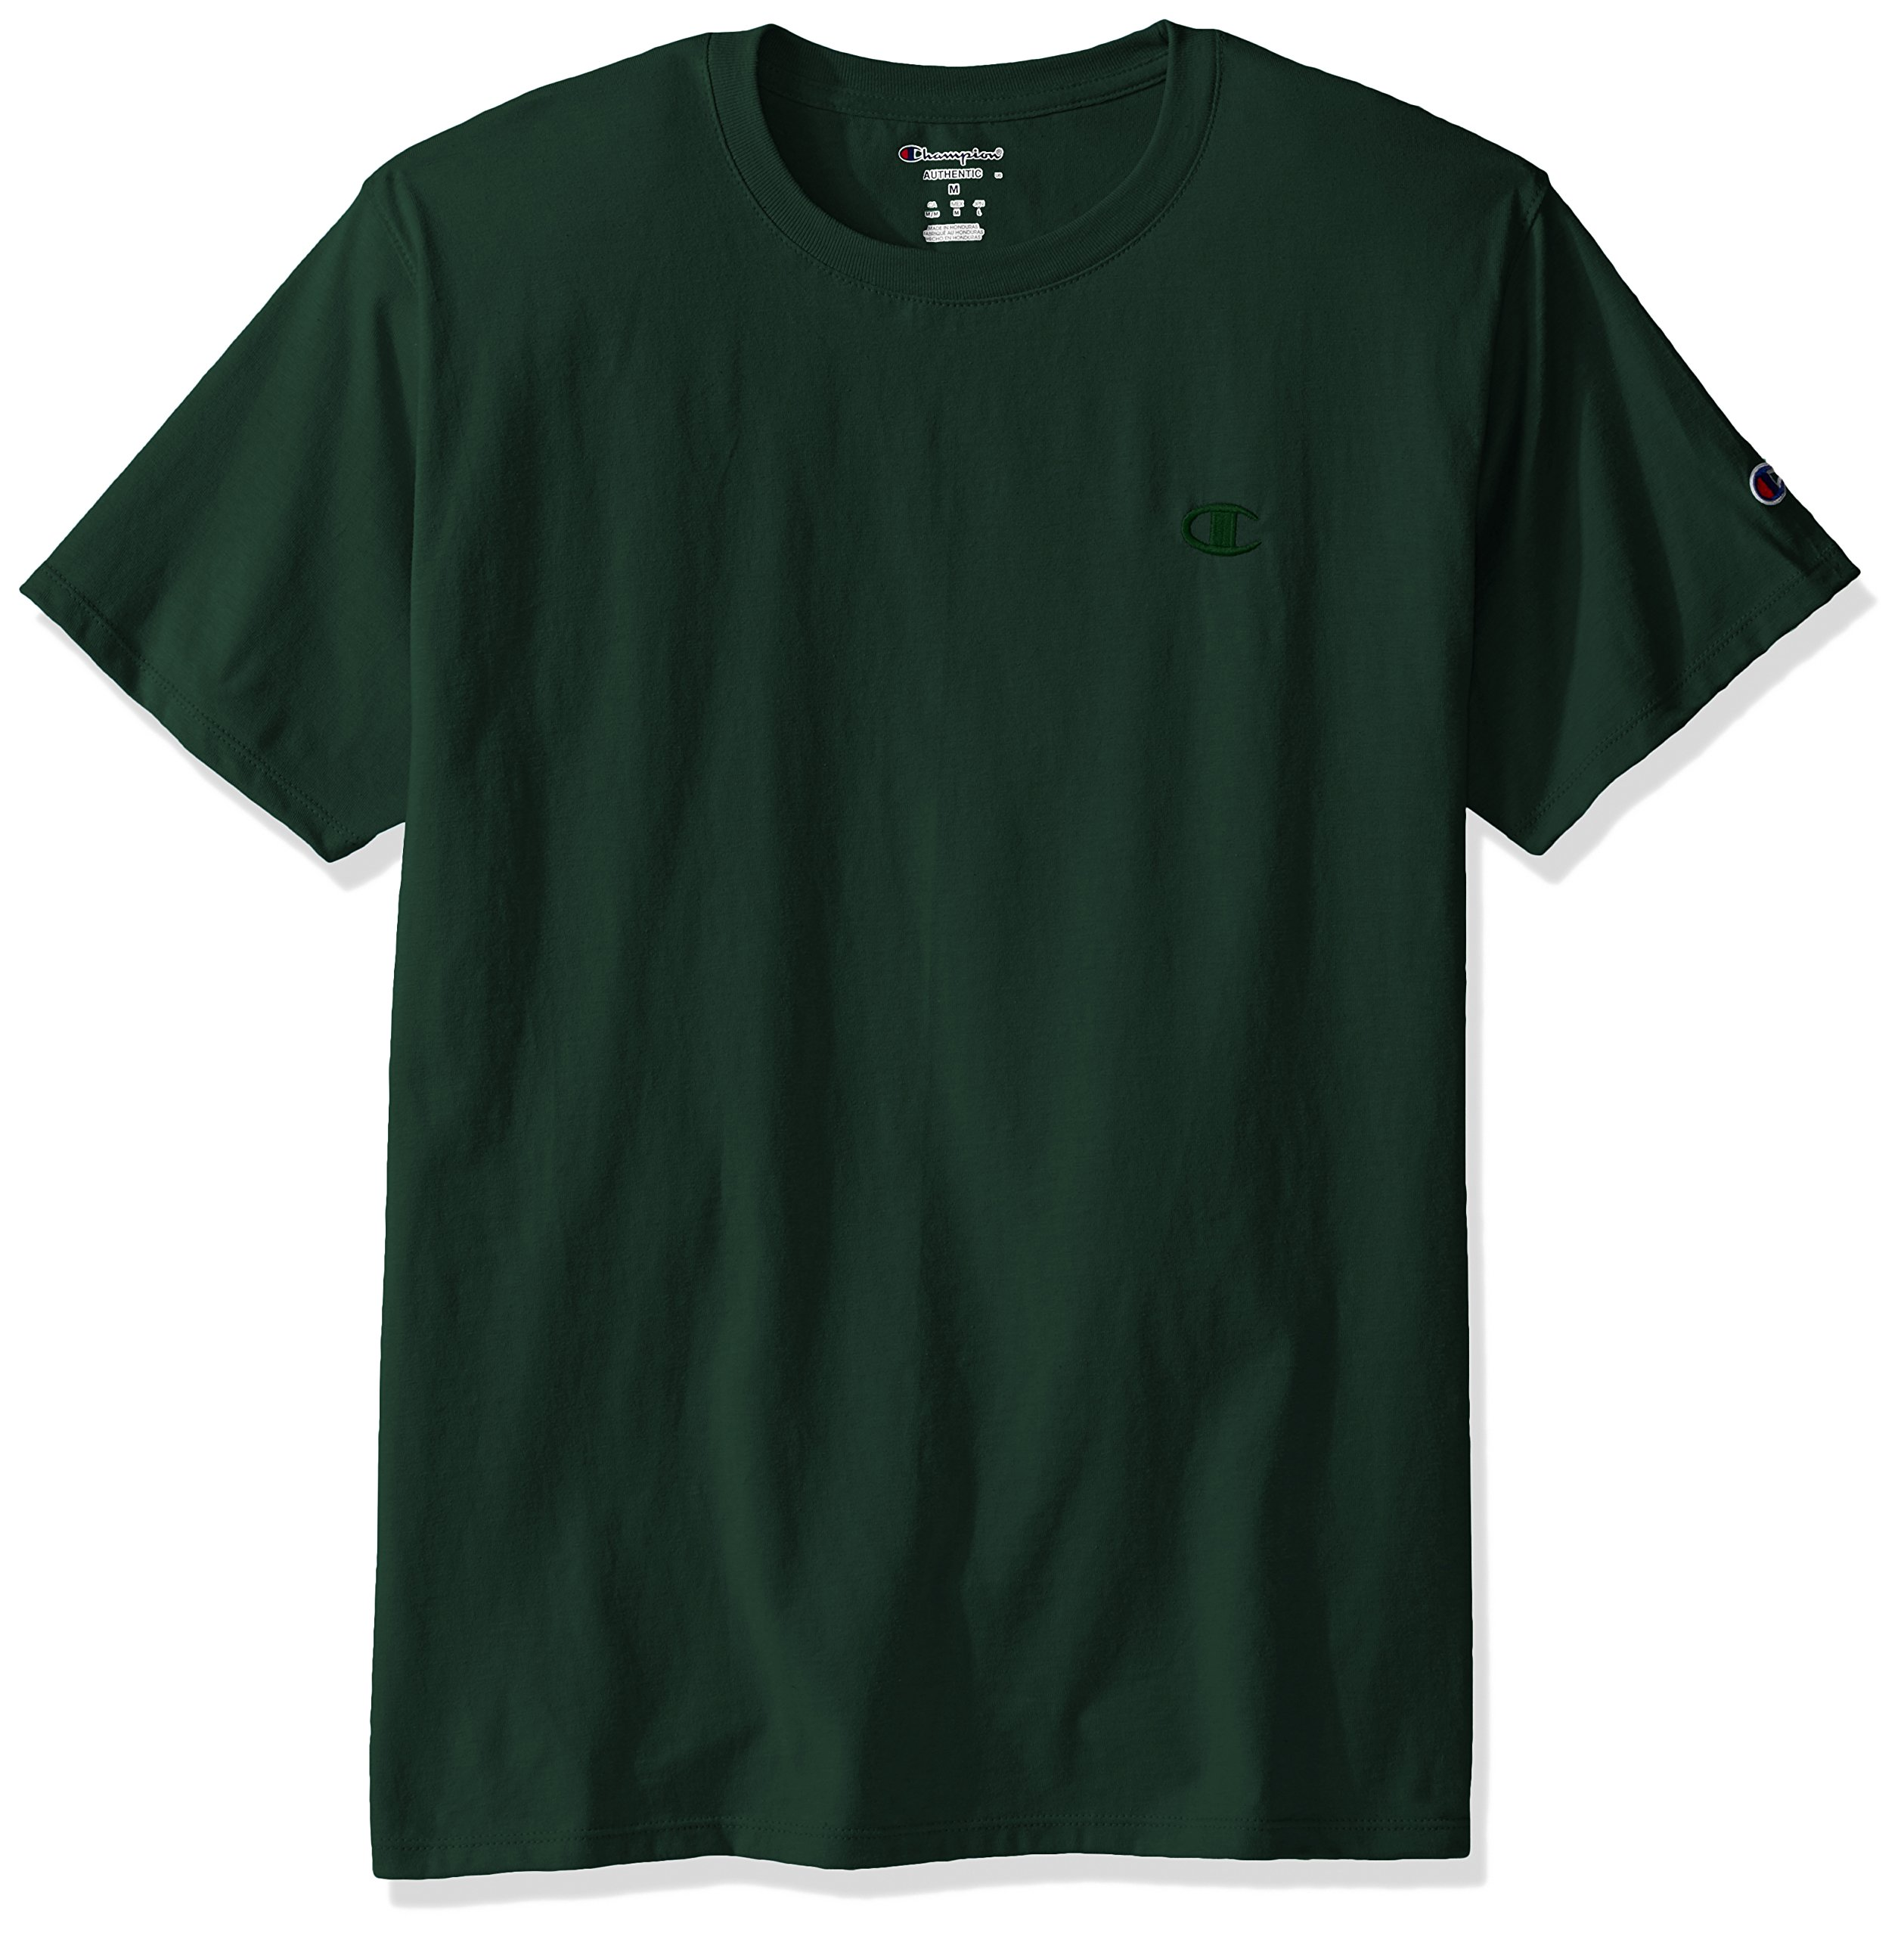 Champion Men's Classic Jersey T-Shirt, Dark Green, XL by Champion